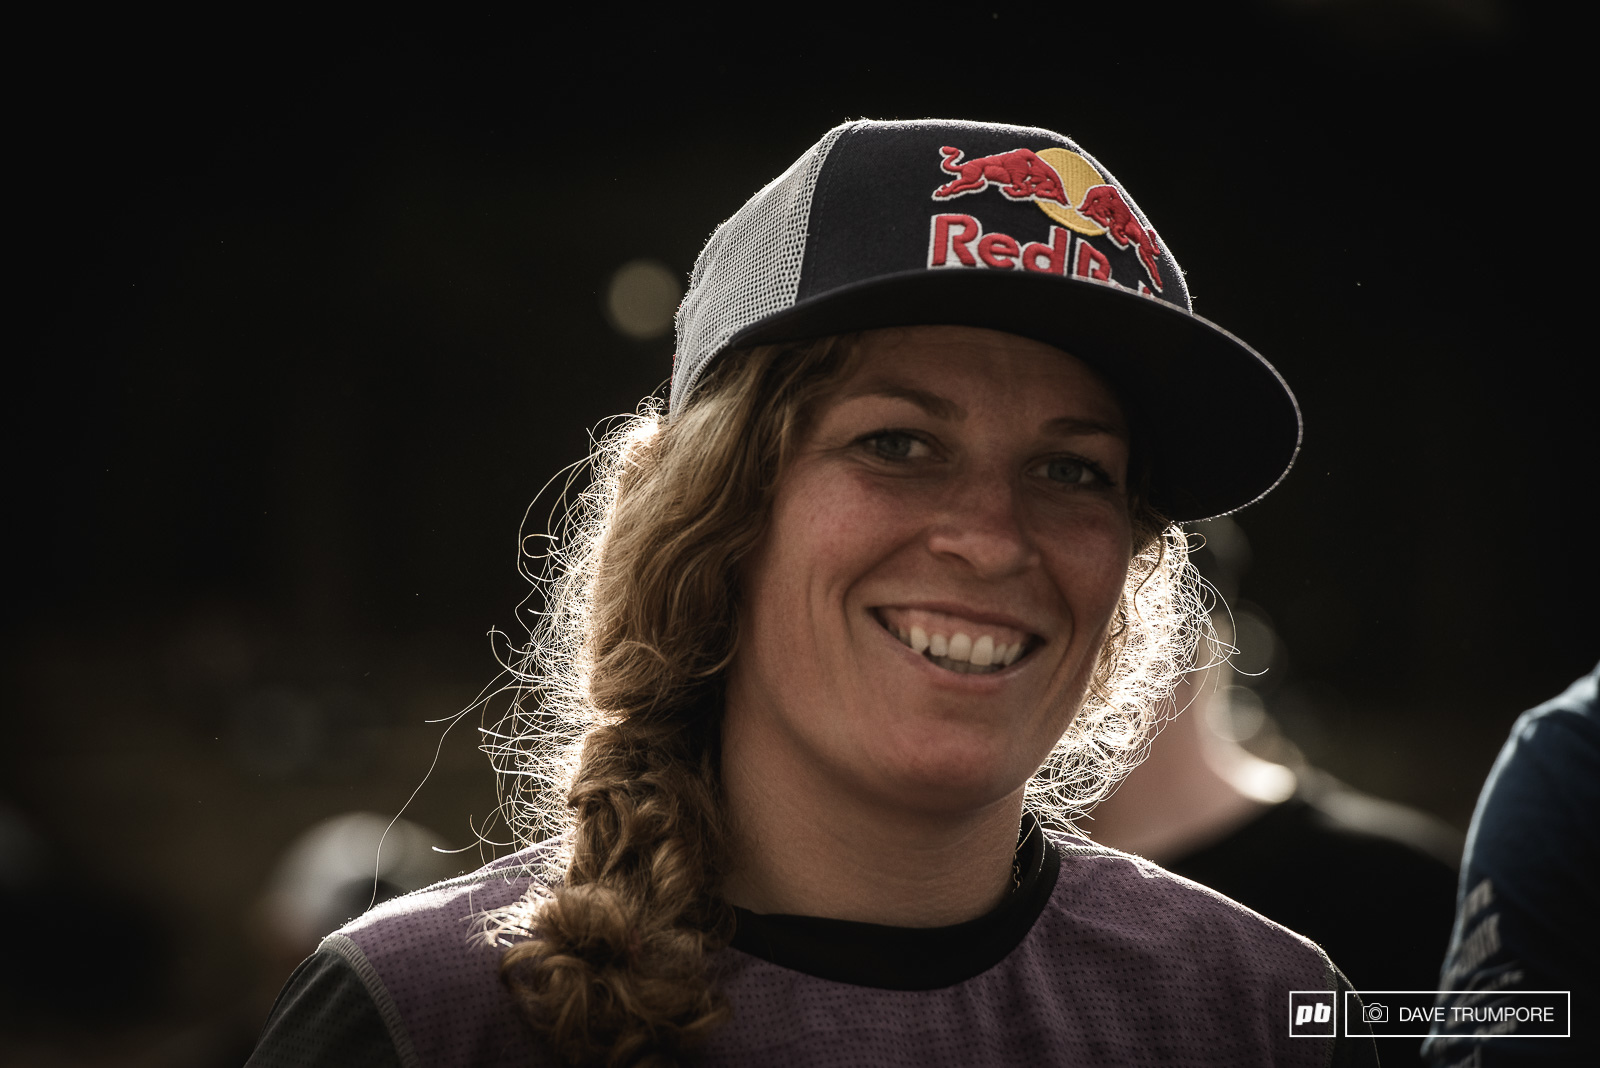 Jill Kintner leaves Rotorua as the points leader in the race to be Queen of Crankworx.